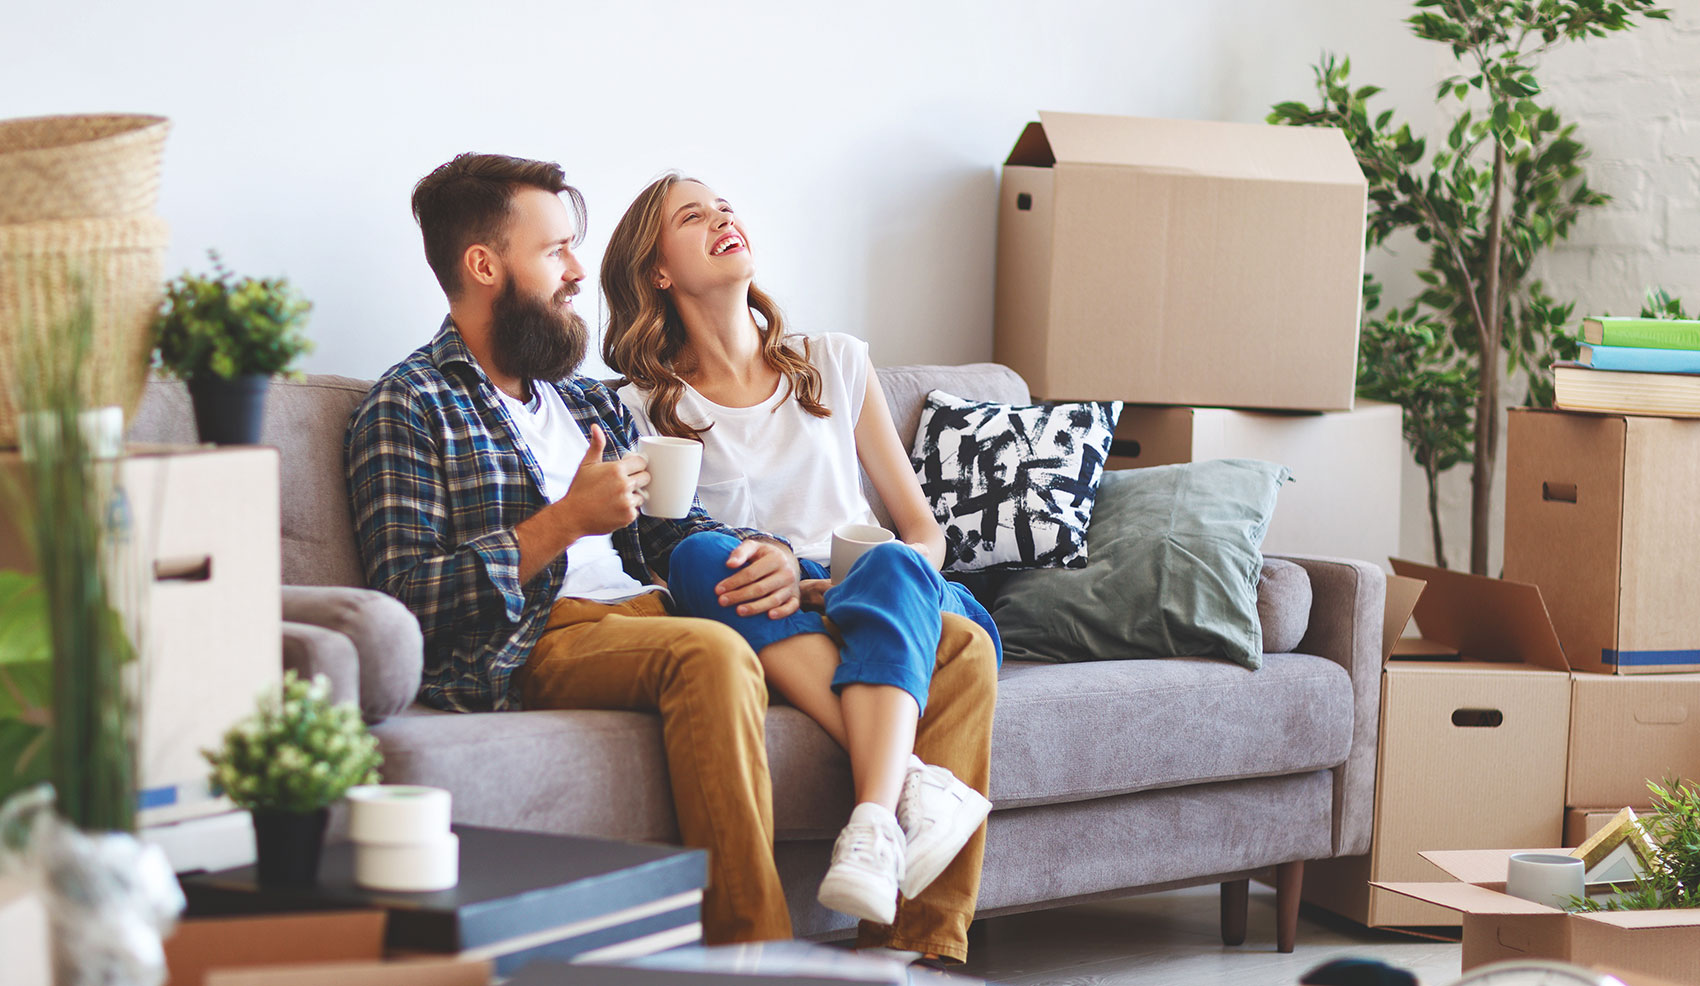 Personal liability, homeowners insurance